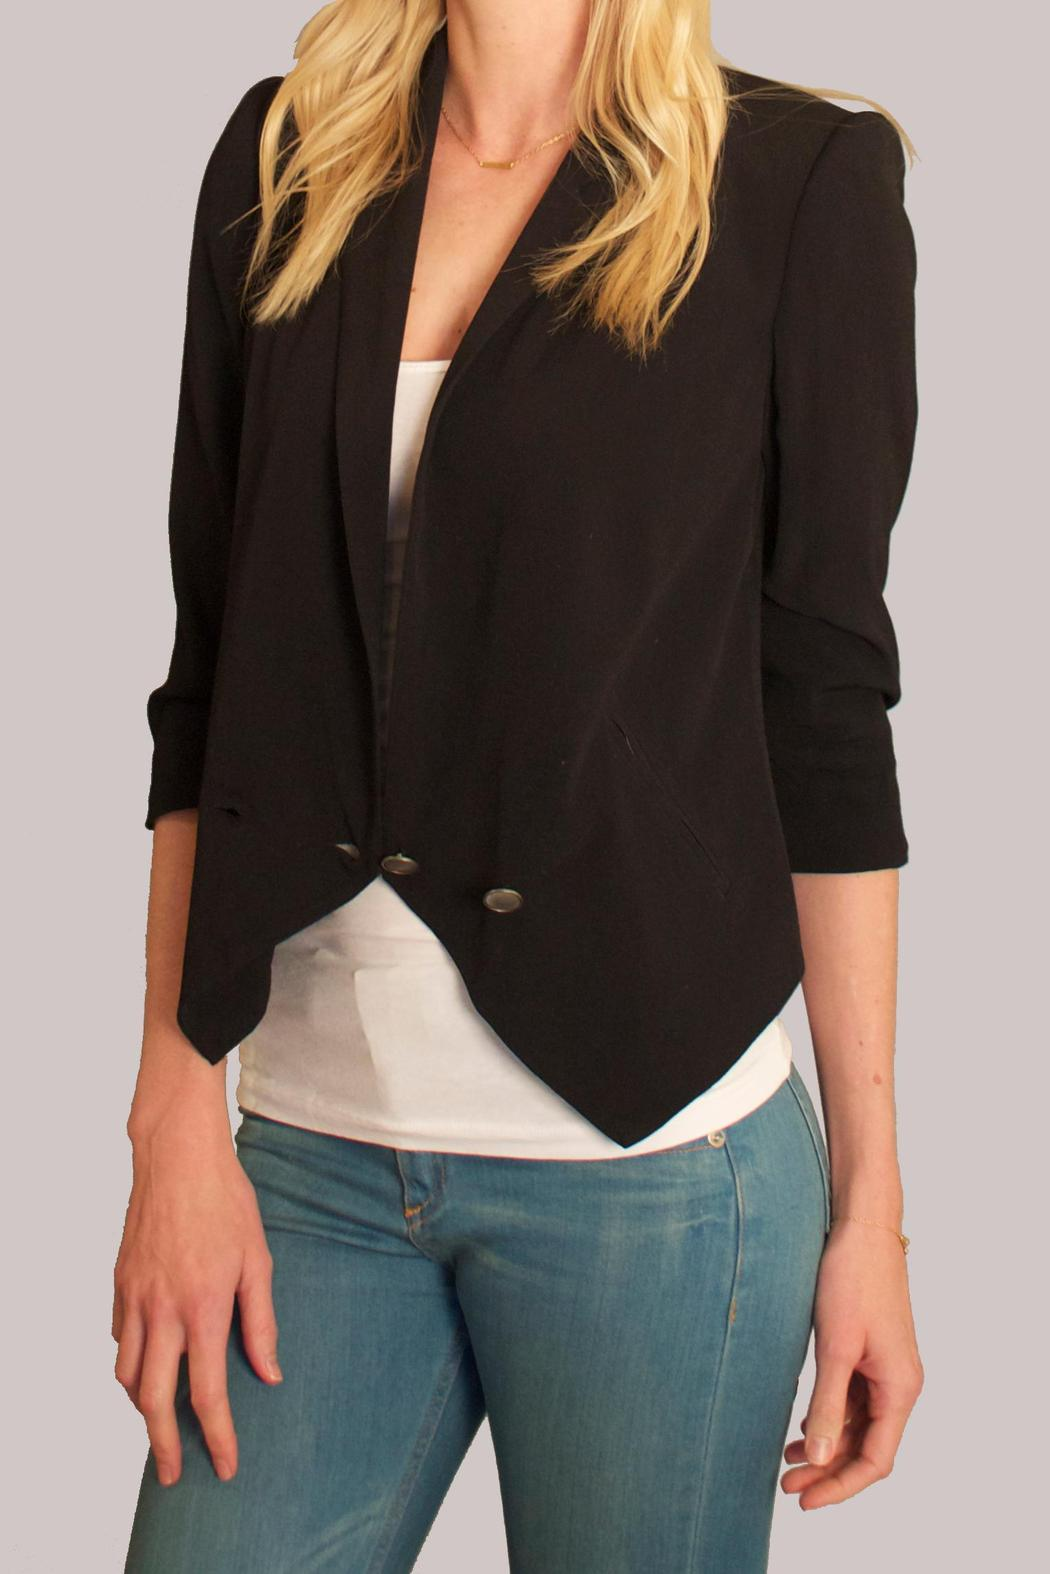 Cynthia Vincent Shawl Collar Blazer - Side Cropped Image